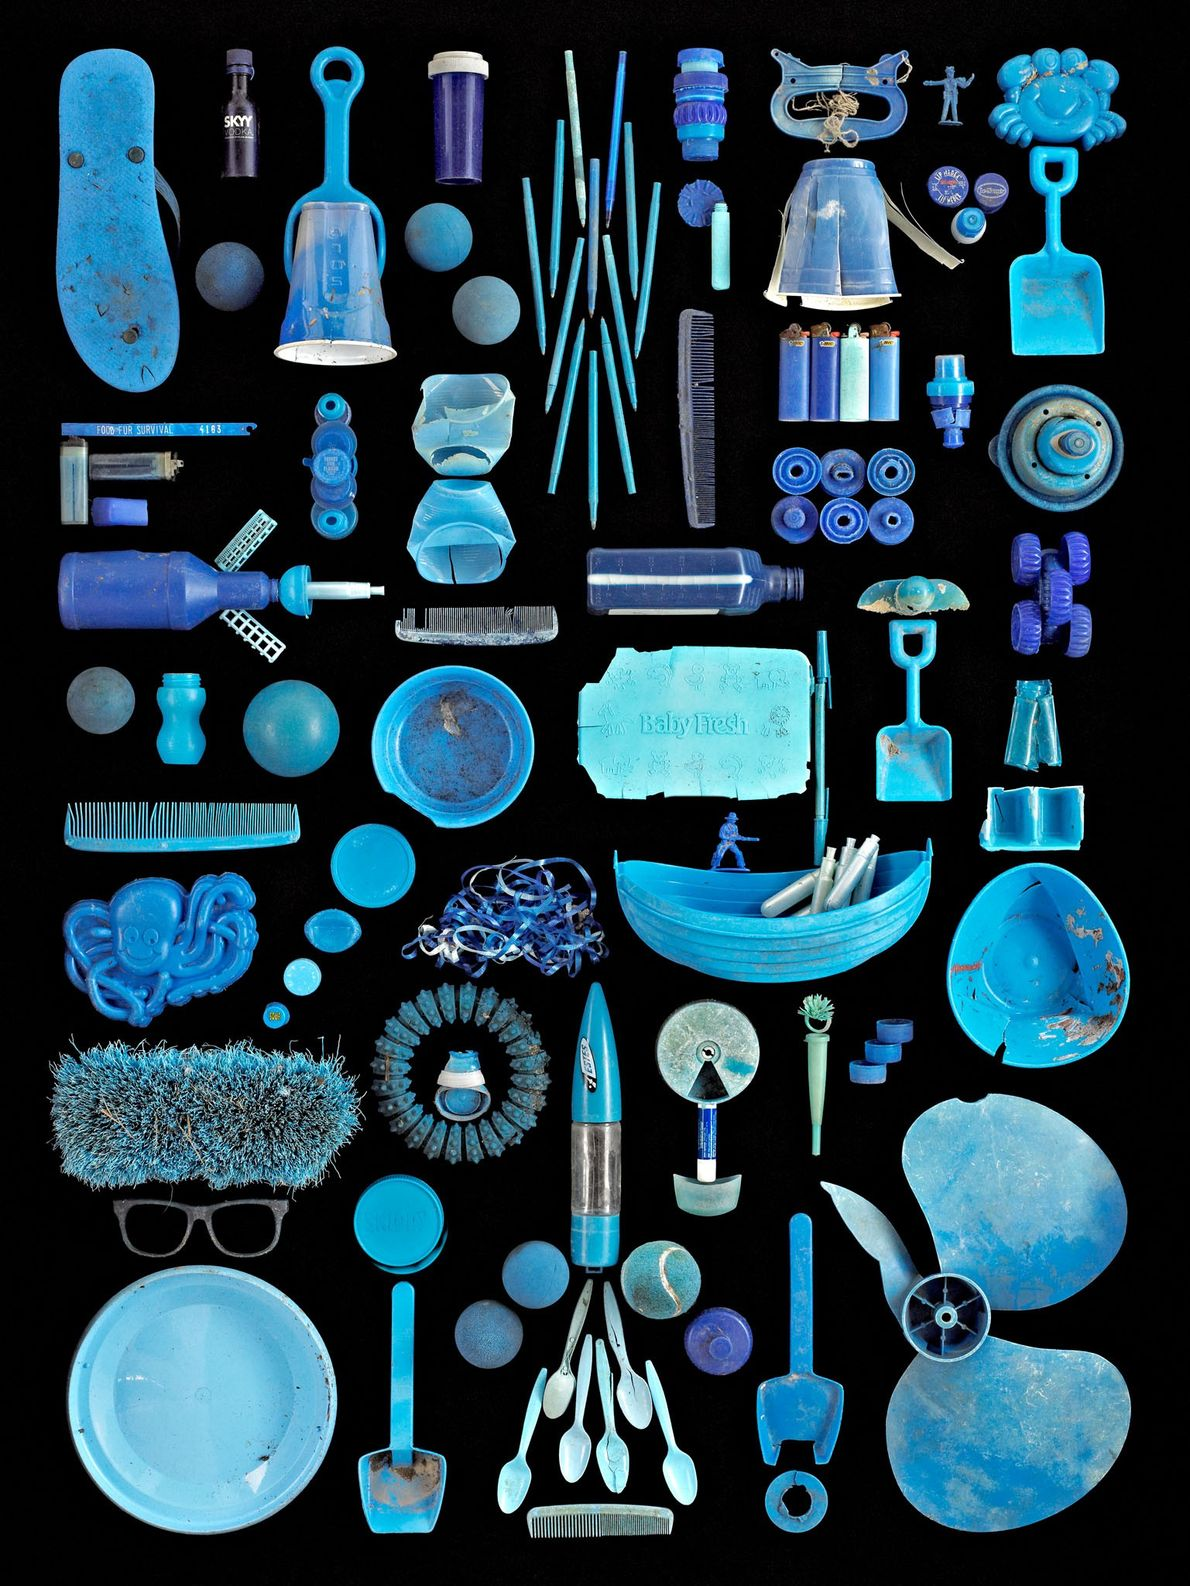 Artist Barry Rosenthal builds these assemblages to illustrate the extent of marine pollution. He keeps trash ...